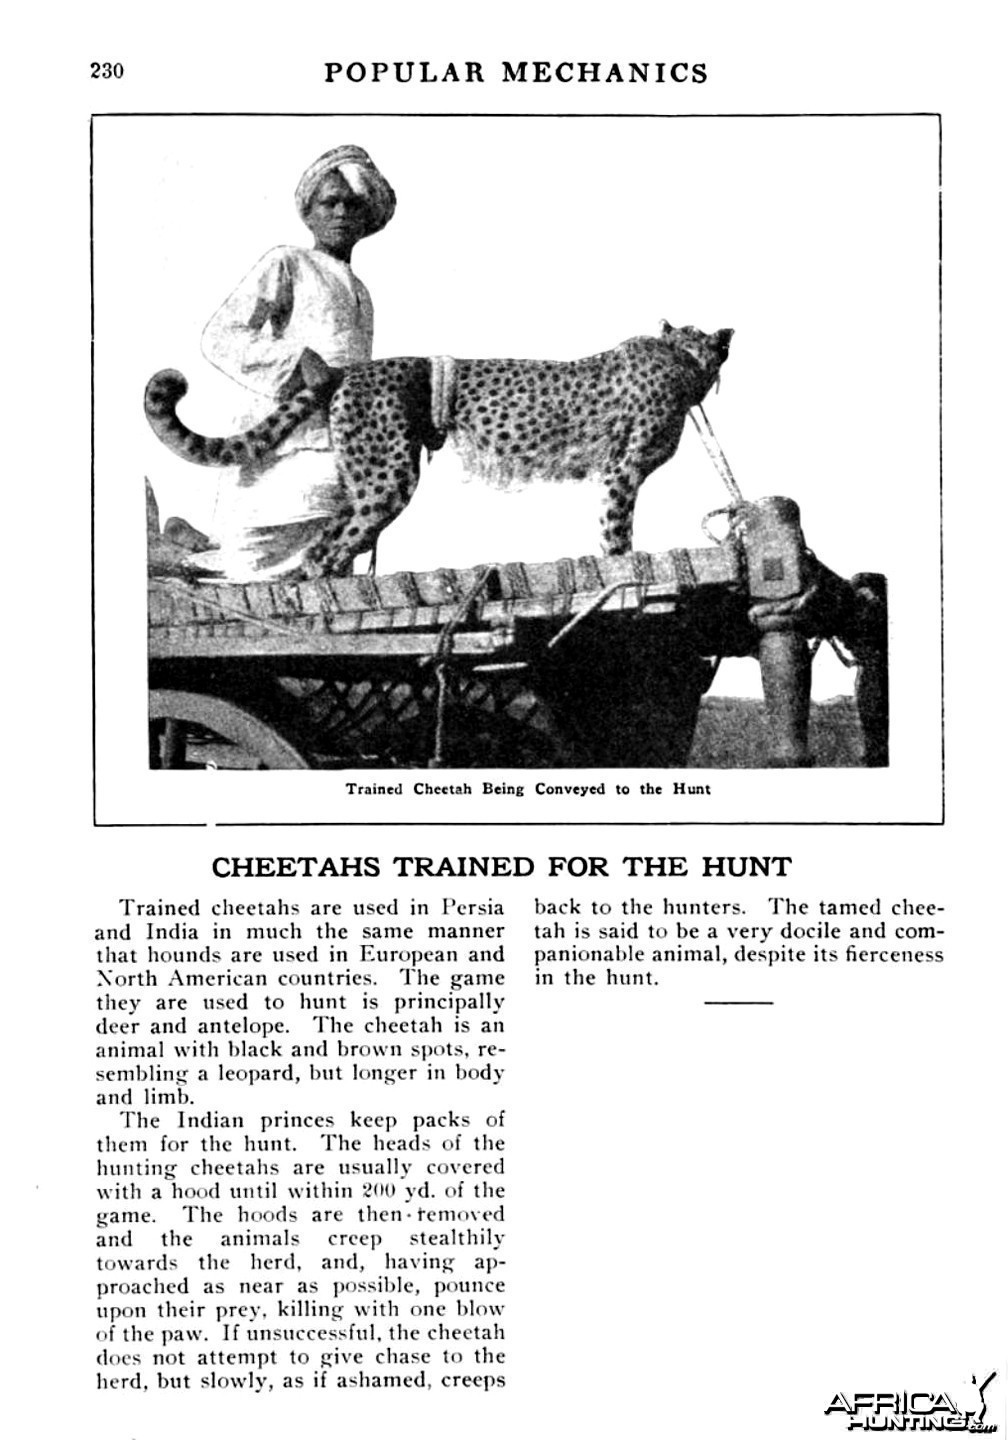 Cheetahs Trained for the Hunt